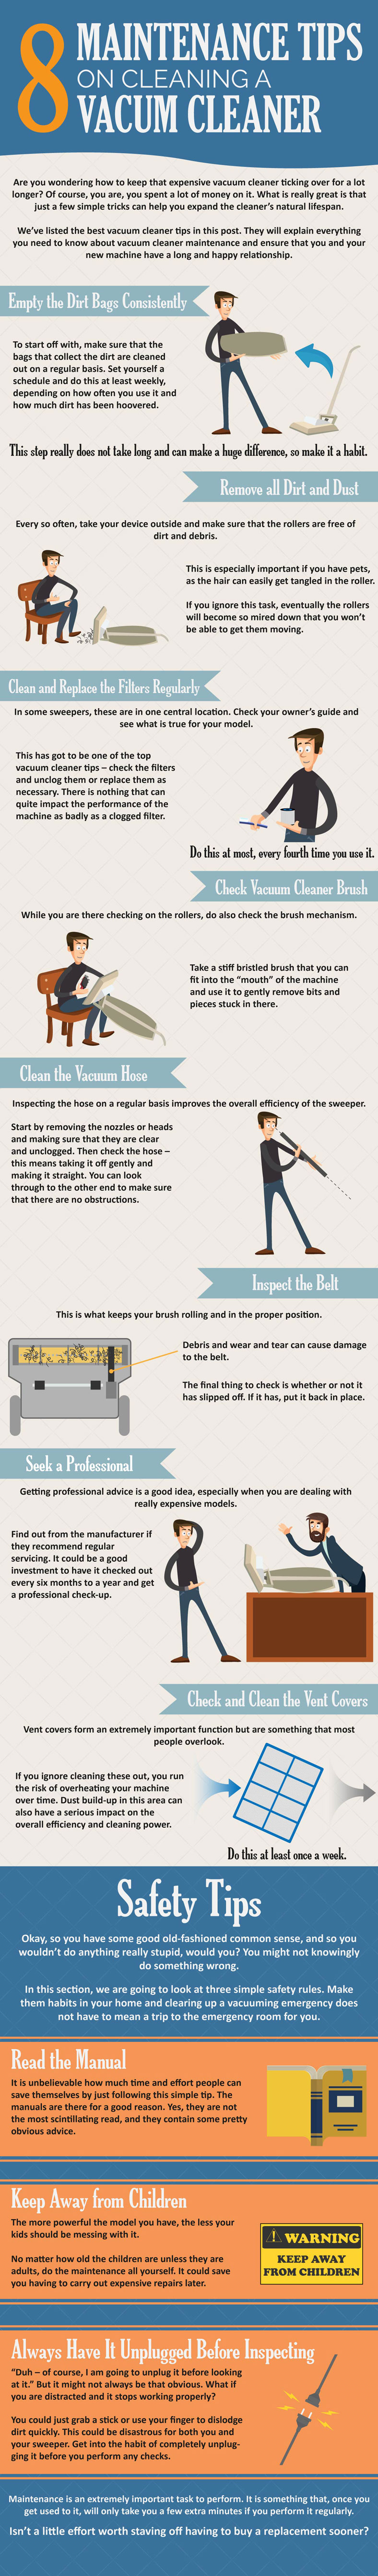 Maintenance Tips on Cleaning a Vacuum Cleaner Infographic